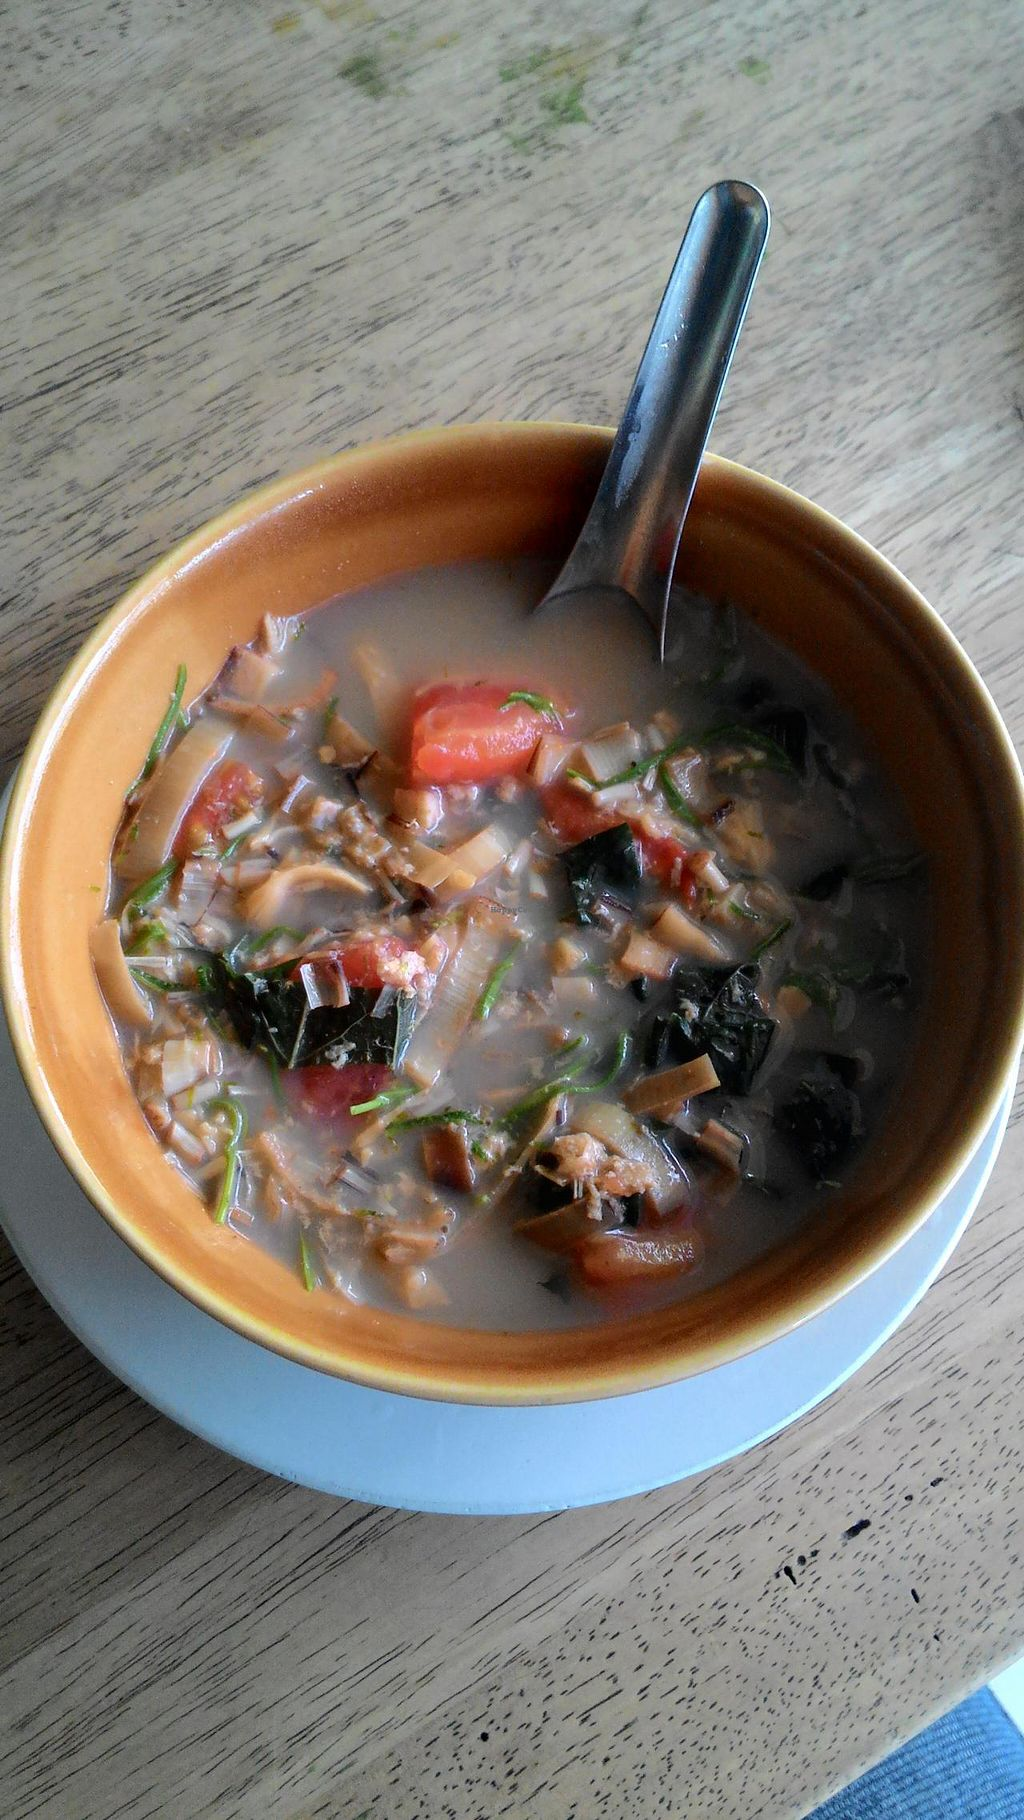 """Photo of Pattaya Vegetarian Food  by <a href=""""/members/profile/Mister%20Yeti"""">Mister Yeti</a> <br/>banana flower soup (prepared with pla-ra, e.g. rather smelly fermented vegetarian fish paste.) <br/> January 19, 2015  - <a href='/contact/abuse/image/21688/90674'>Report</a>"""